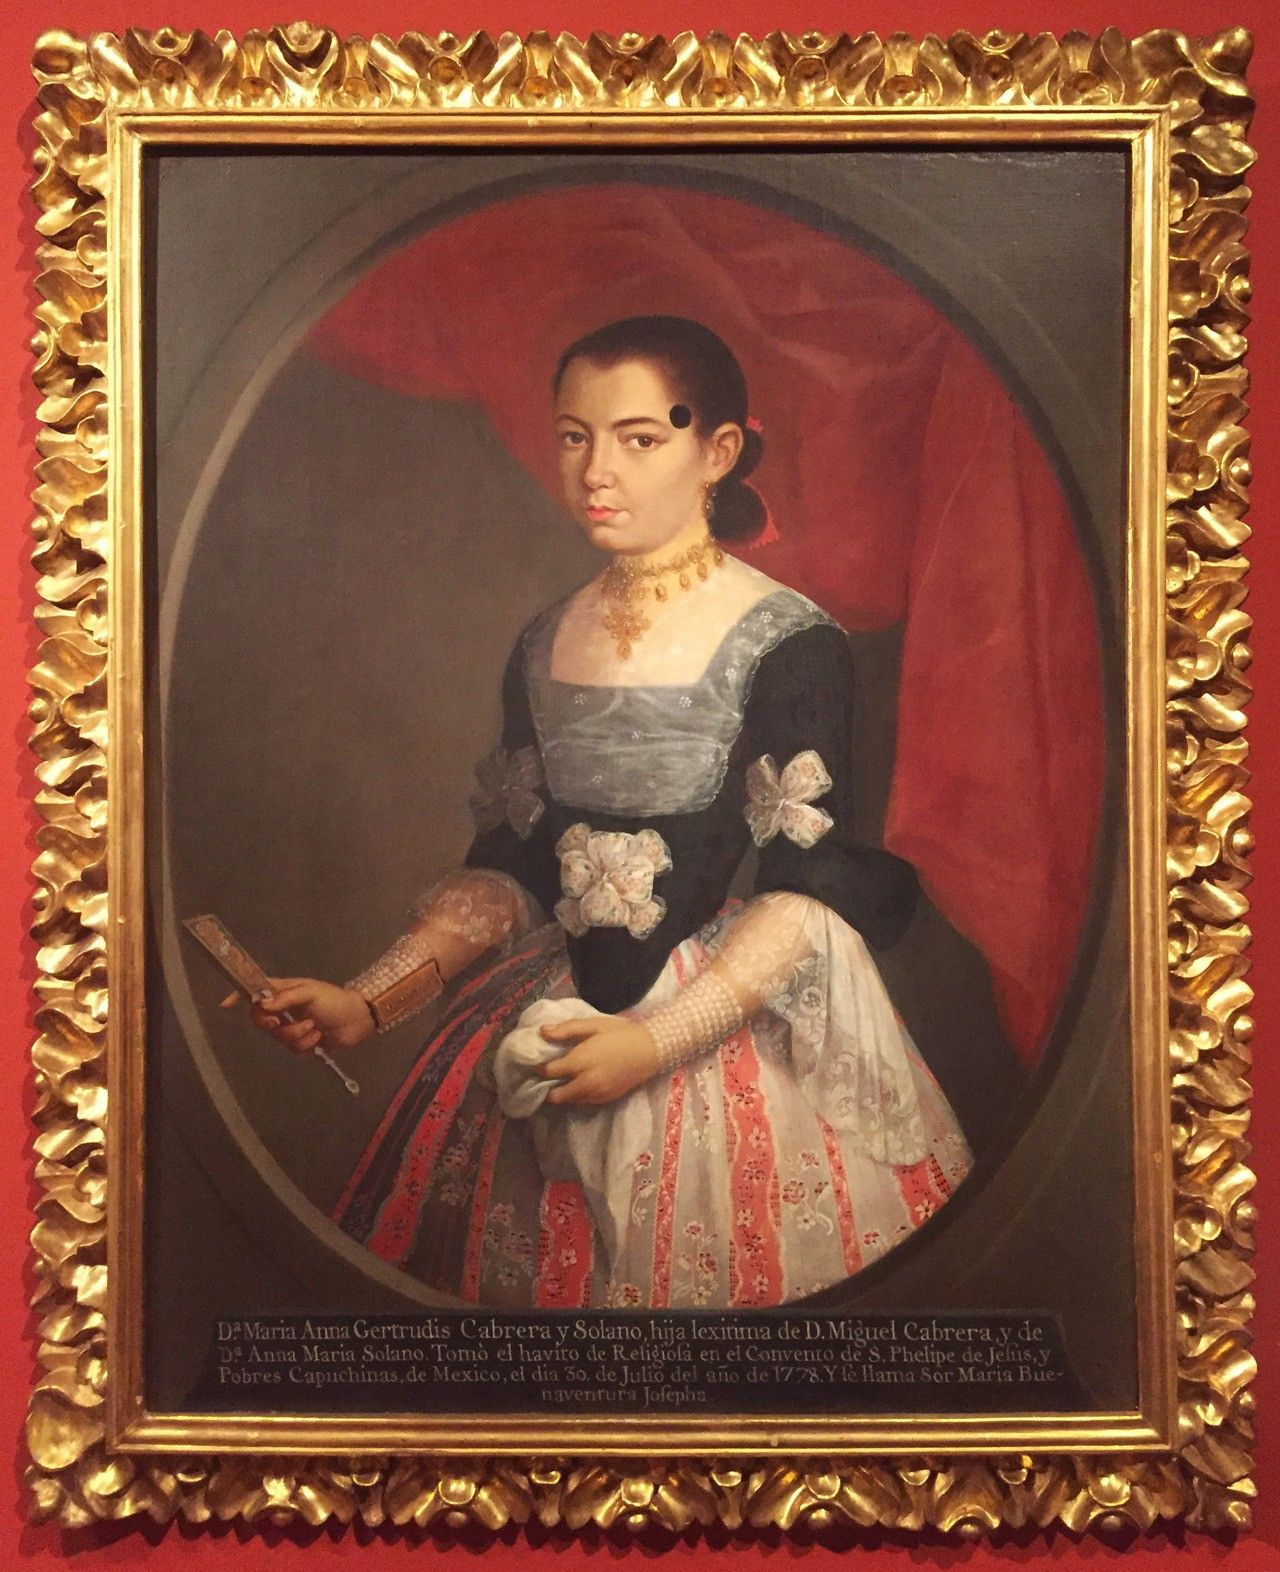 Pin By Cheryl Stotesbery On 18th Century European Style Board Portraiture Painting Painting Art